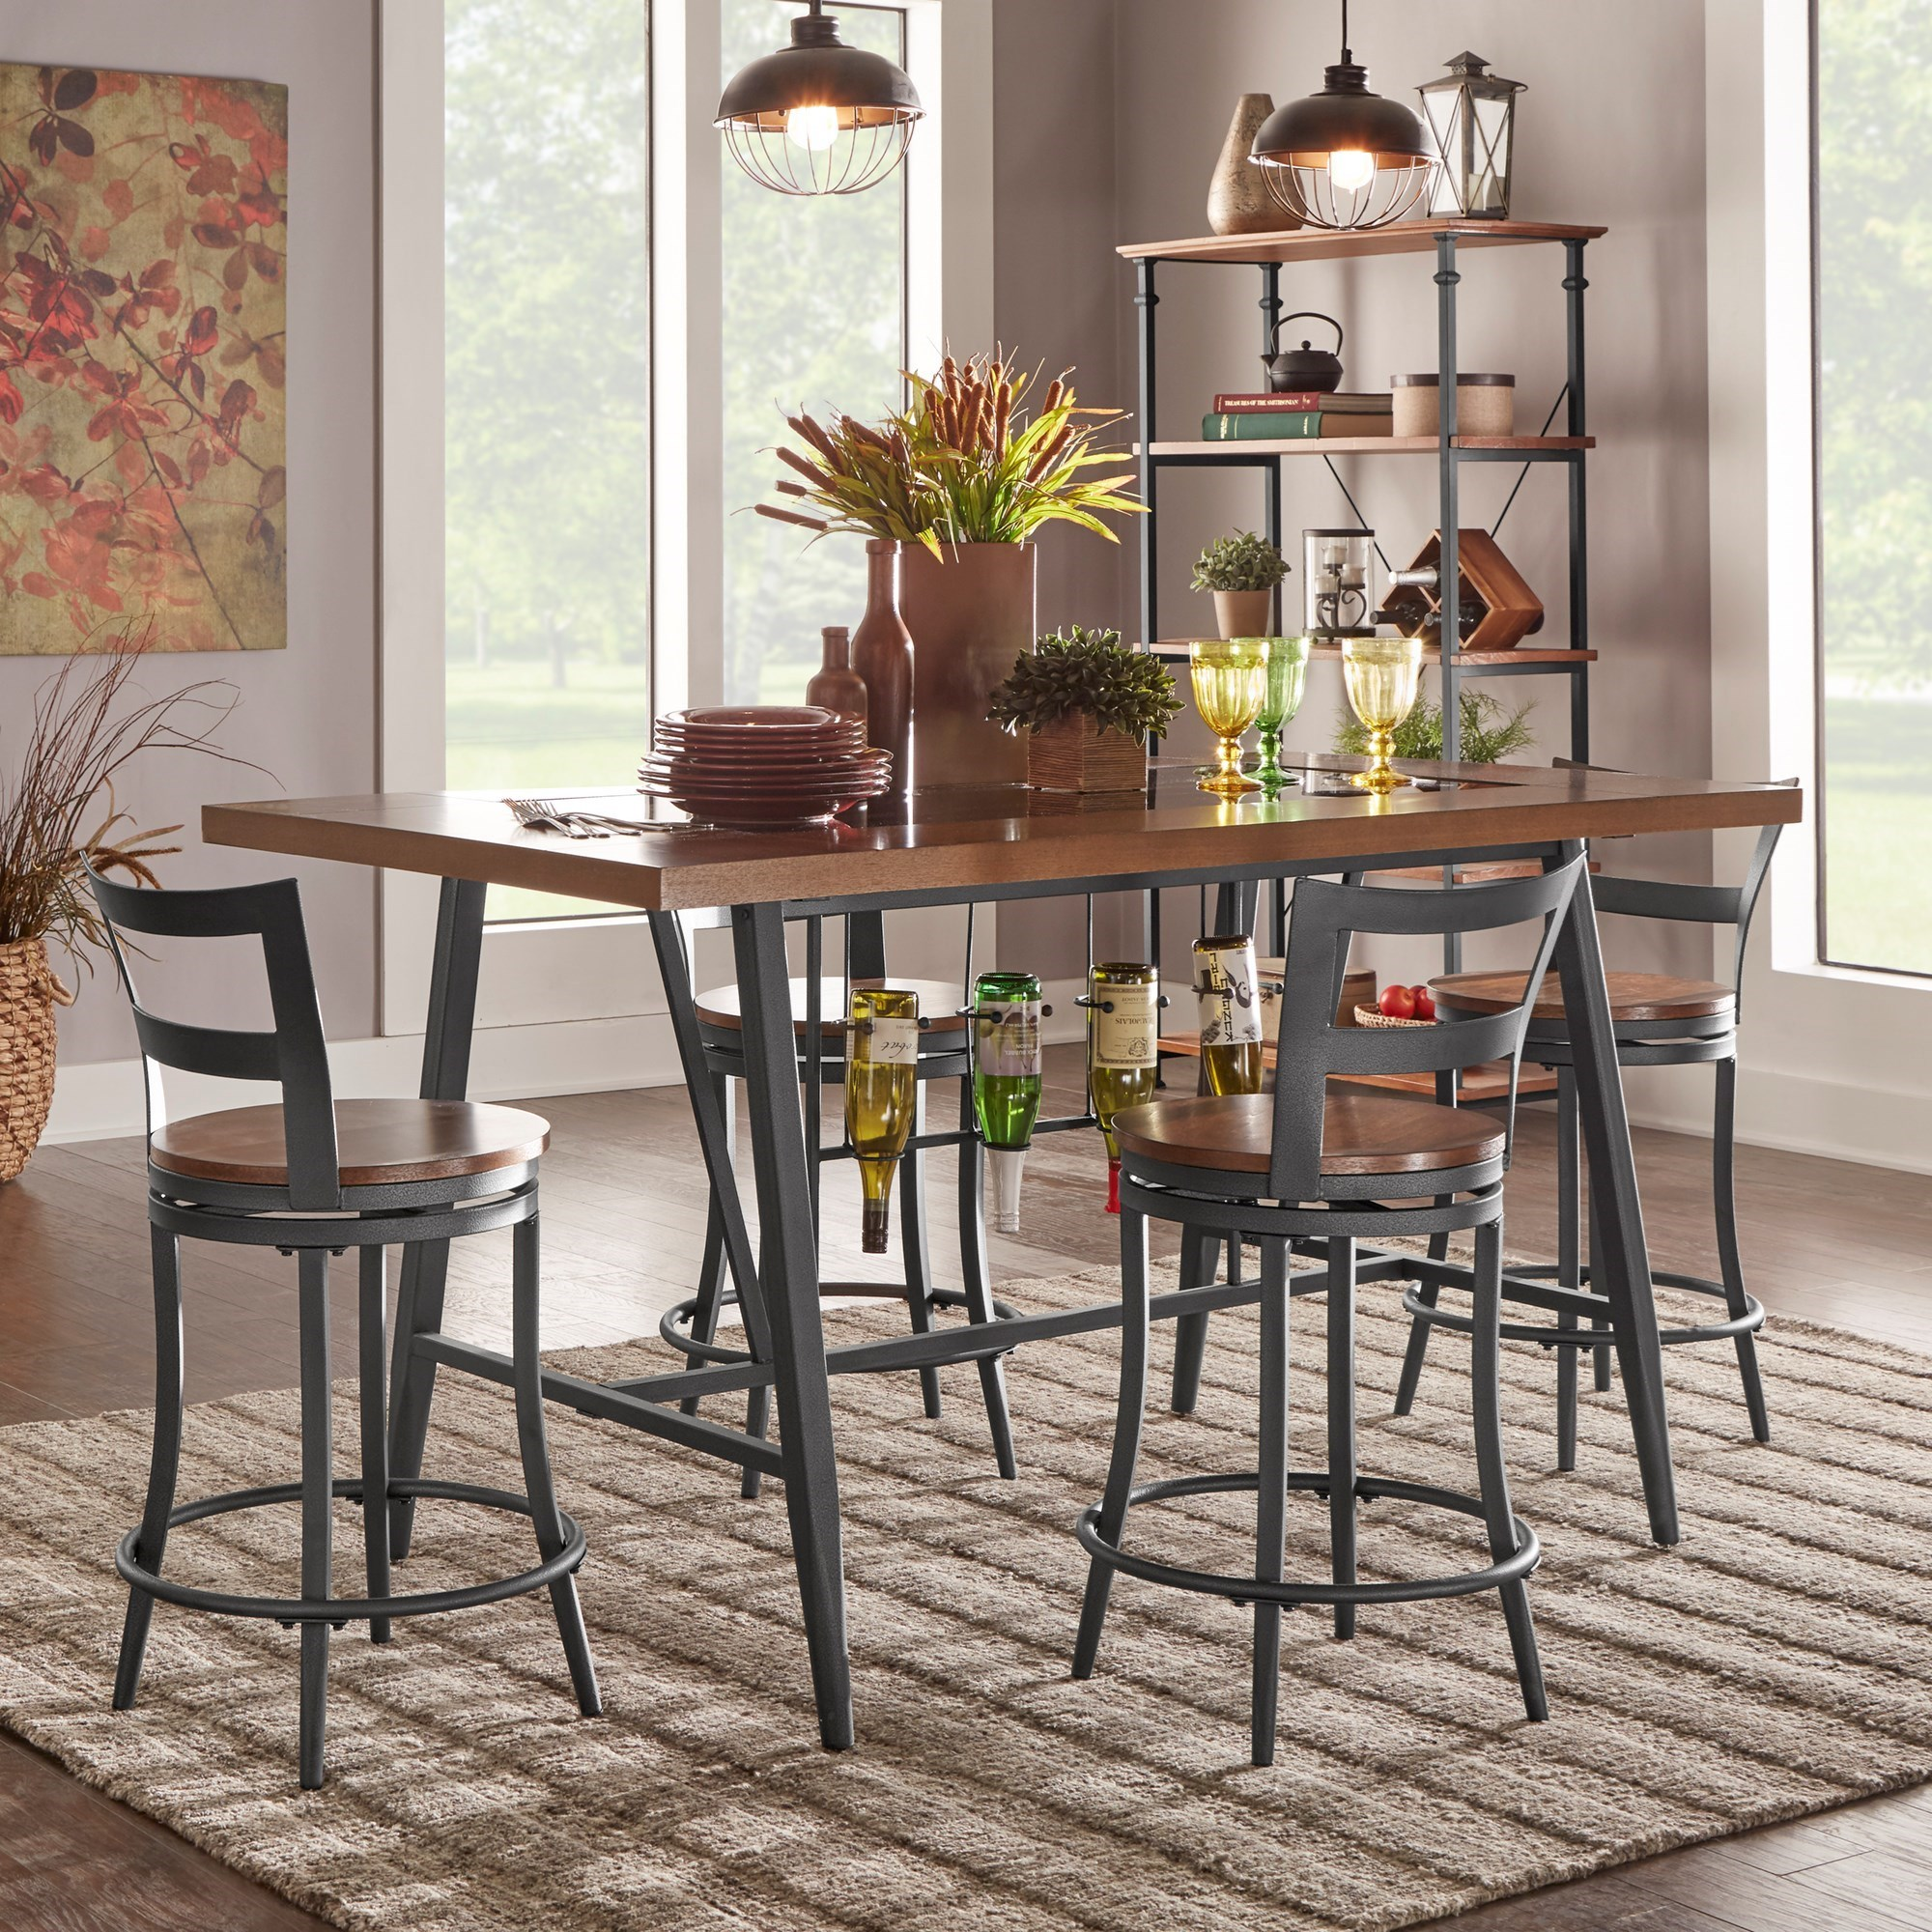 Homelegance Selbyville Contemporary Counter Height Table and Chair